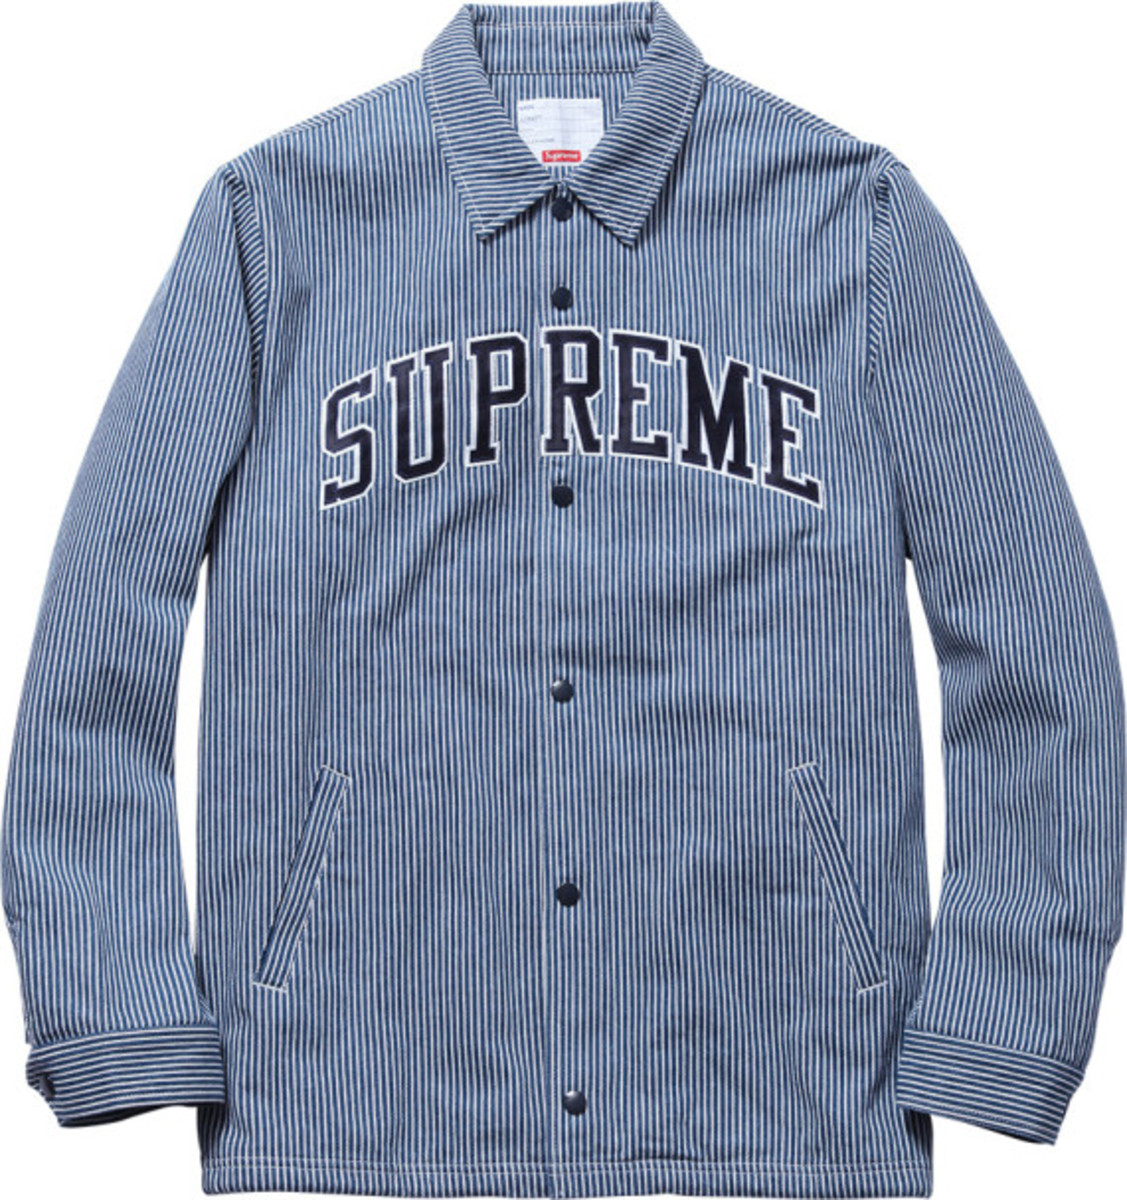 supreme-fall-winter-2013-outerwear-collection-54